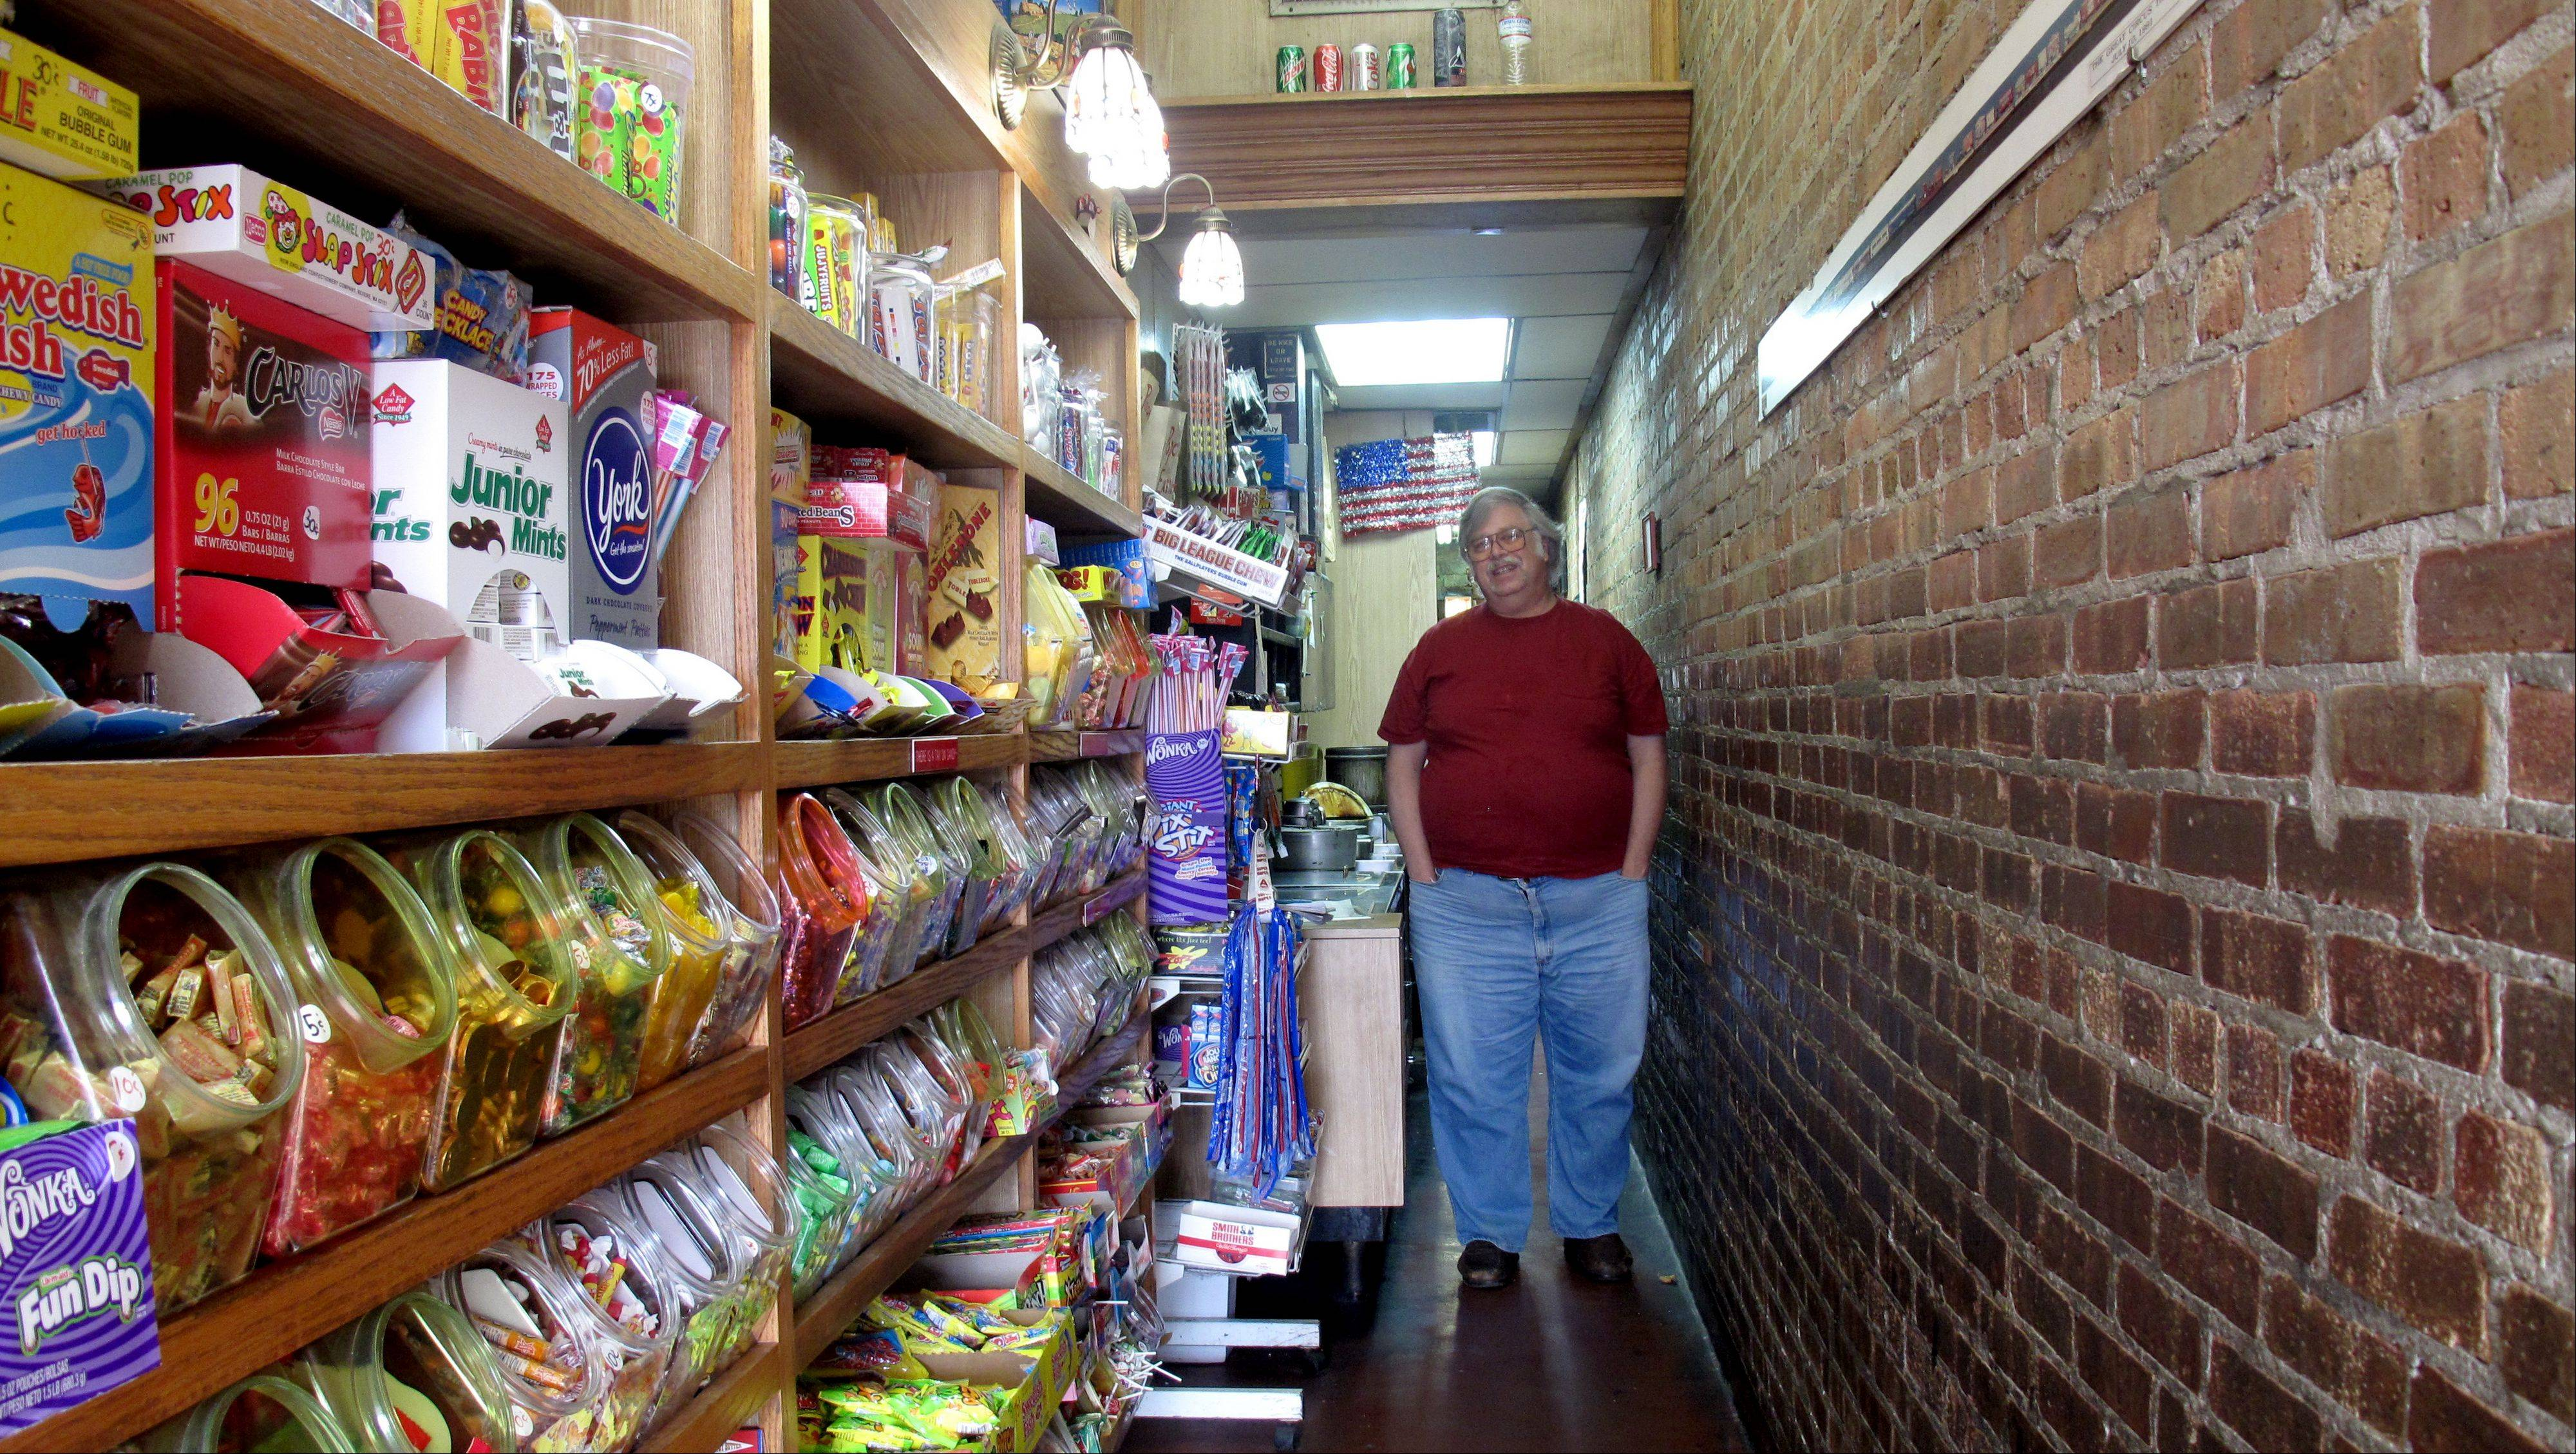 The Little Popcorn Store in downtown Wheaton has been around 90 years and still sits in a four-foot-wide alleyway between two buildings. When more than one customer enters the store, they must remain in single file to fit.